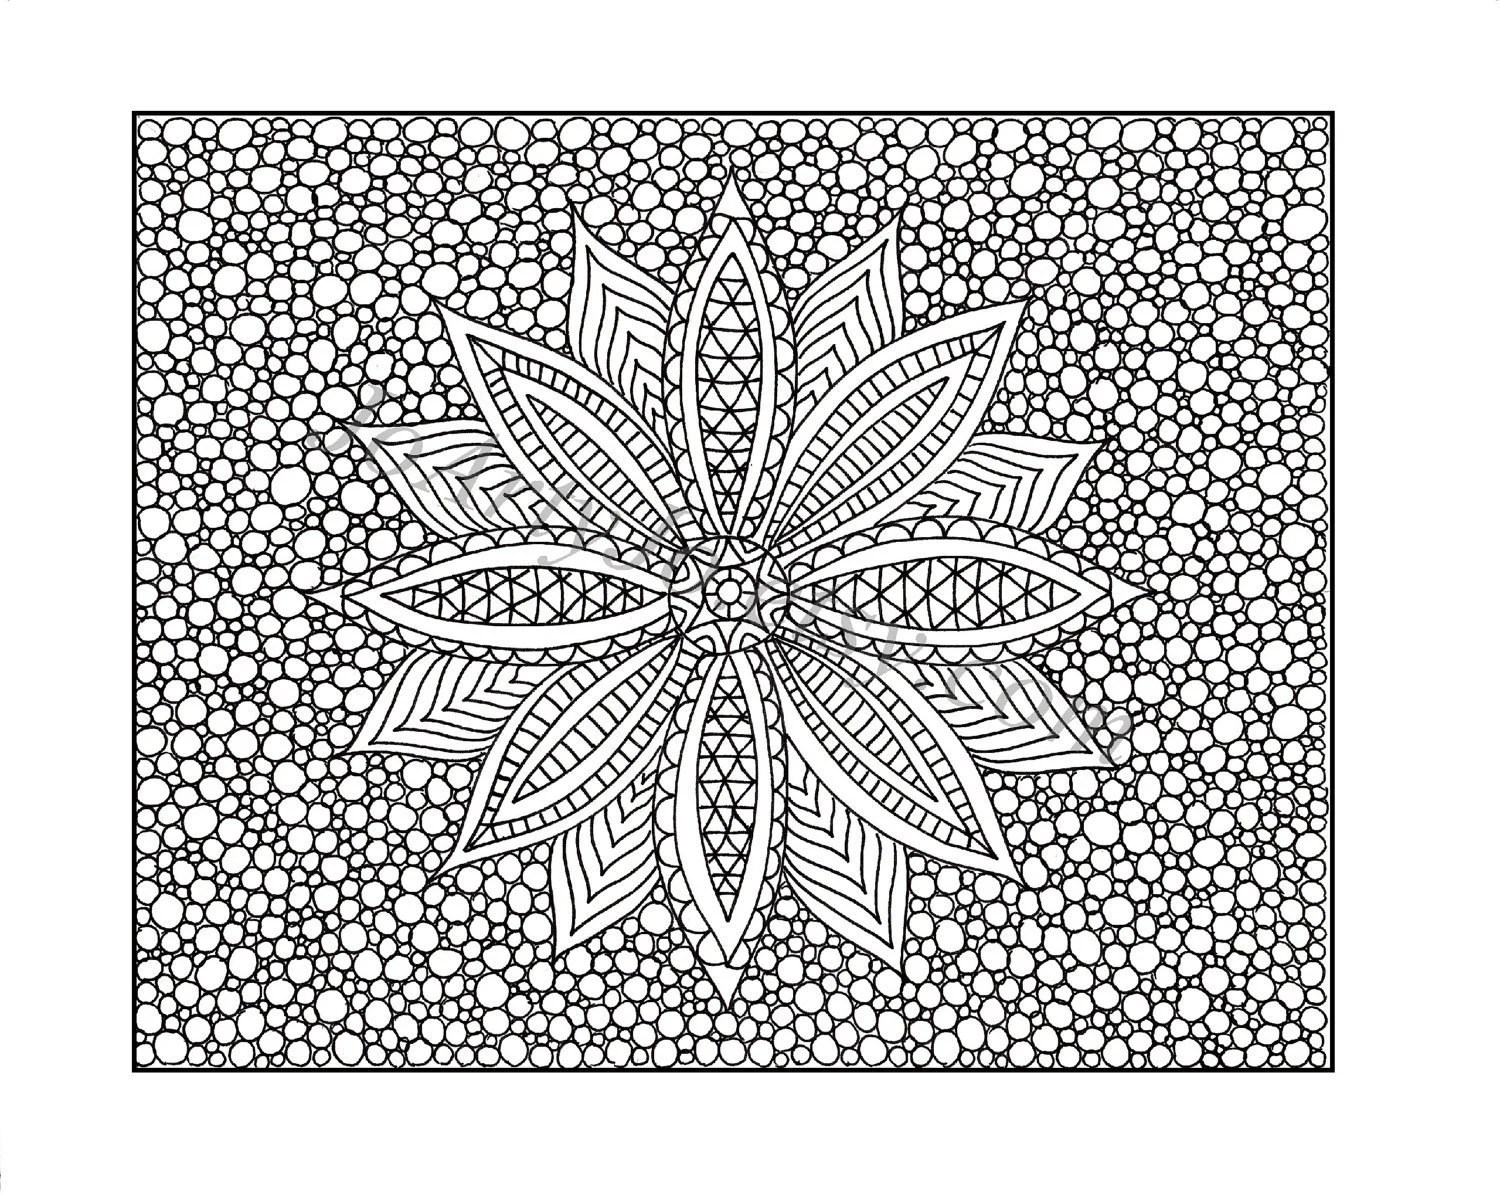 Zentangle Inspired Coloring Page Printable Zendoodle